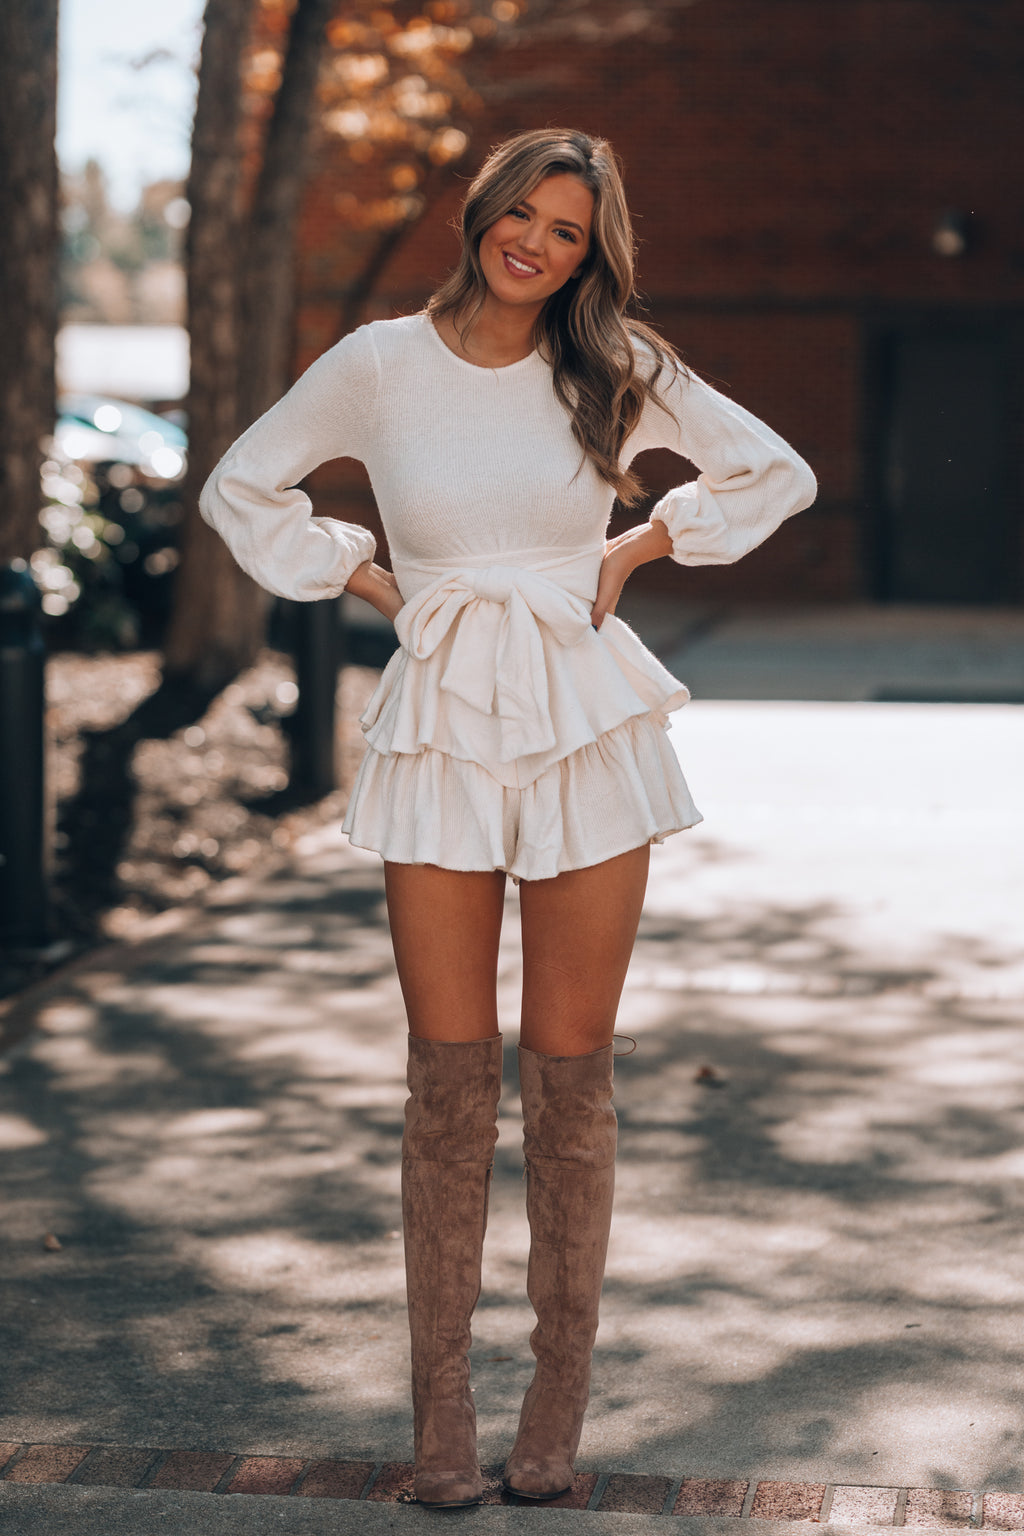 Ellie Sweater Ruffle Romper (Cream) PRE-ORDER Ships October 23rd